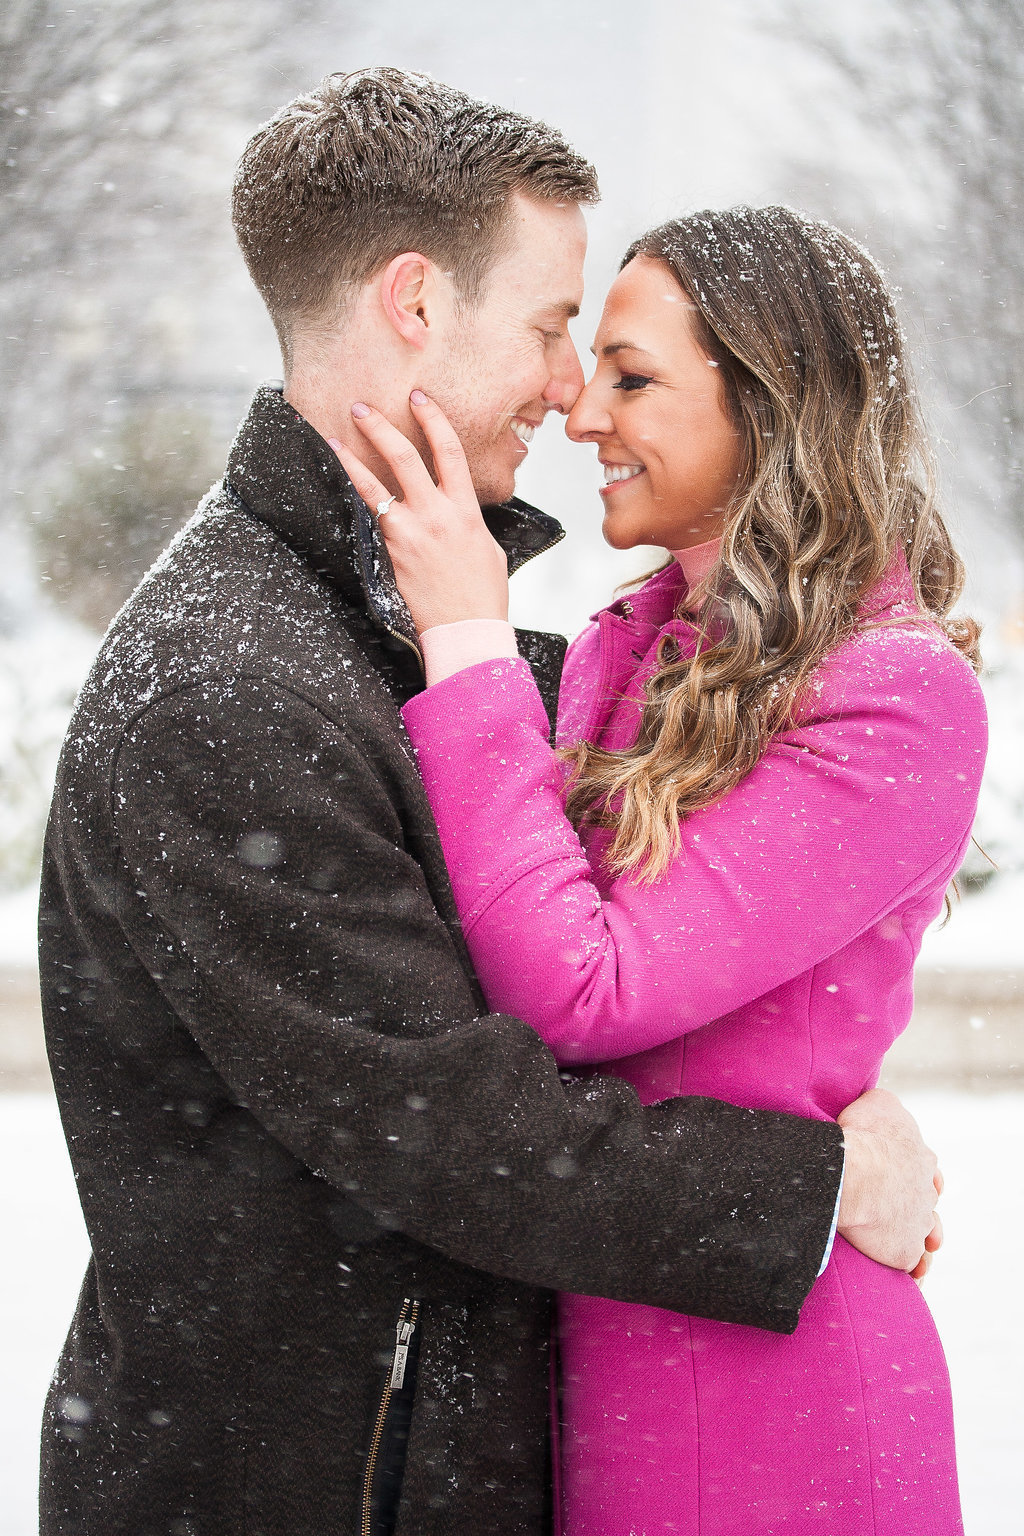 Millennium Park Chicago Illinois Winter Engagement Photographer Taylor Ingles 25